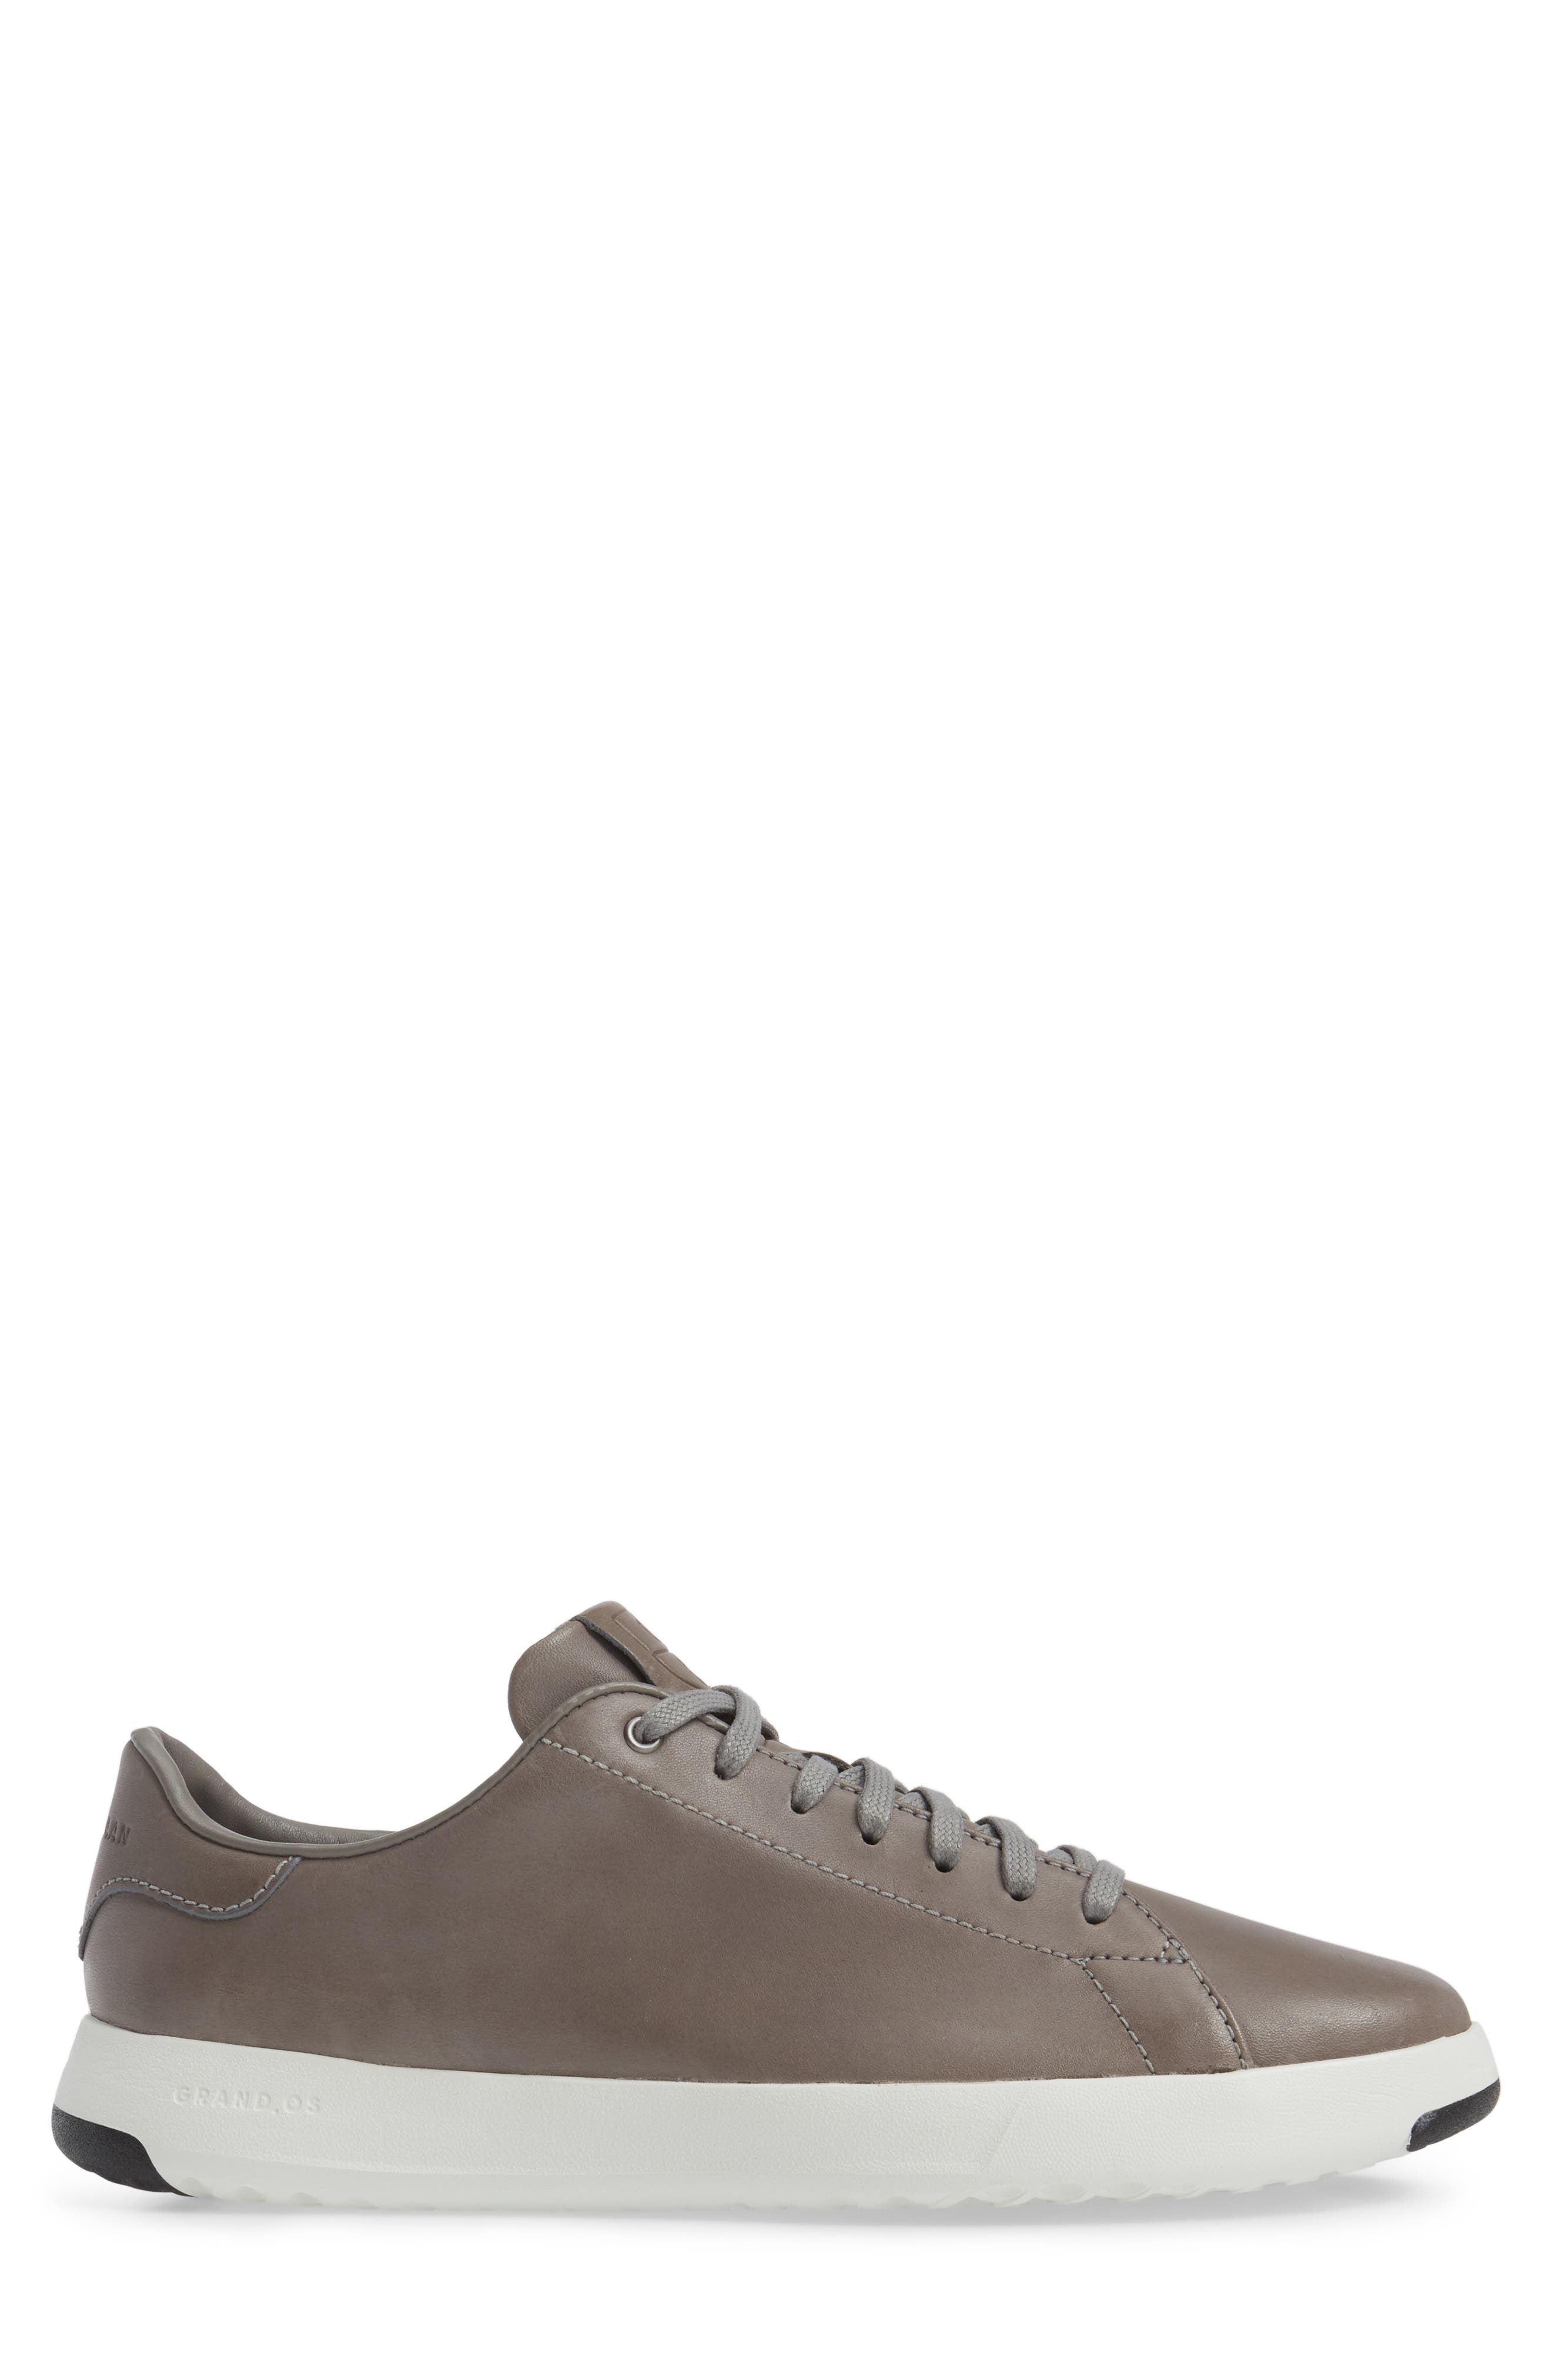 GrandPro Tennis Sneaker,                             Alternate thumbnail 3, color,                             IRONCLOUD LEATHER